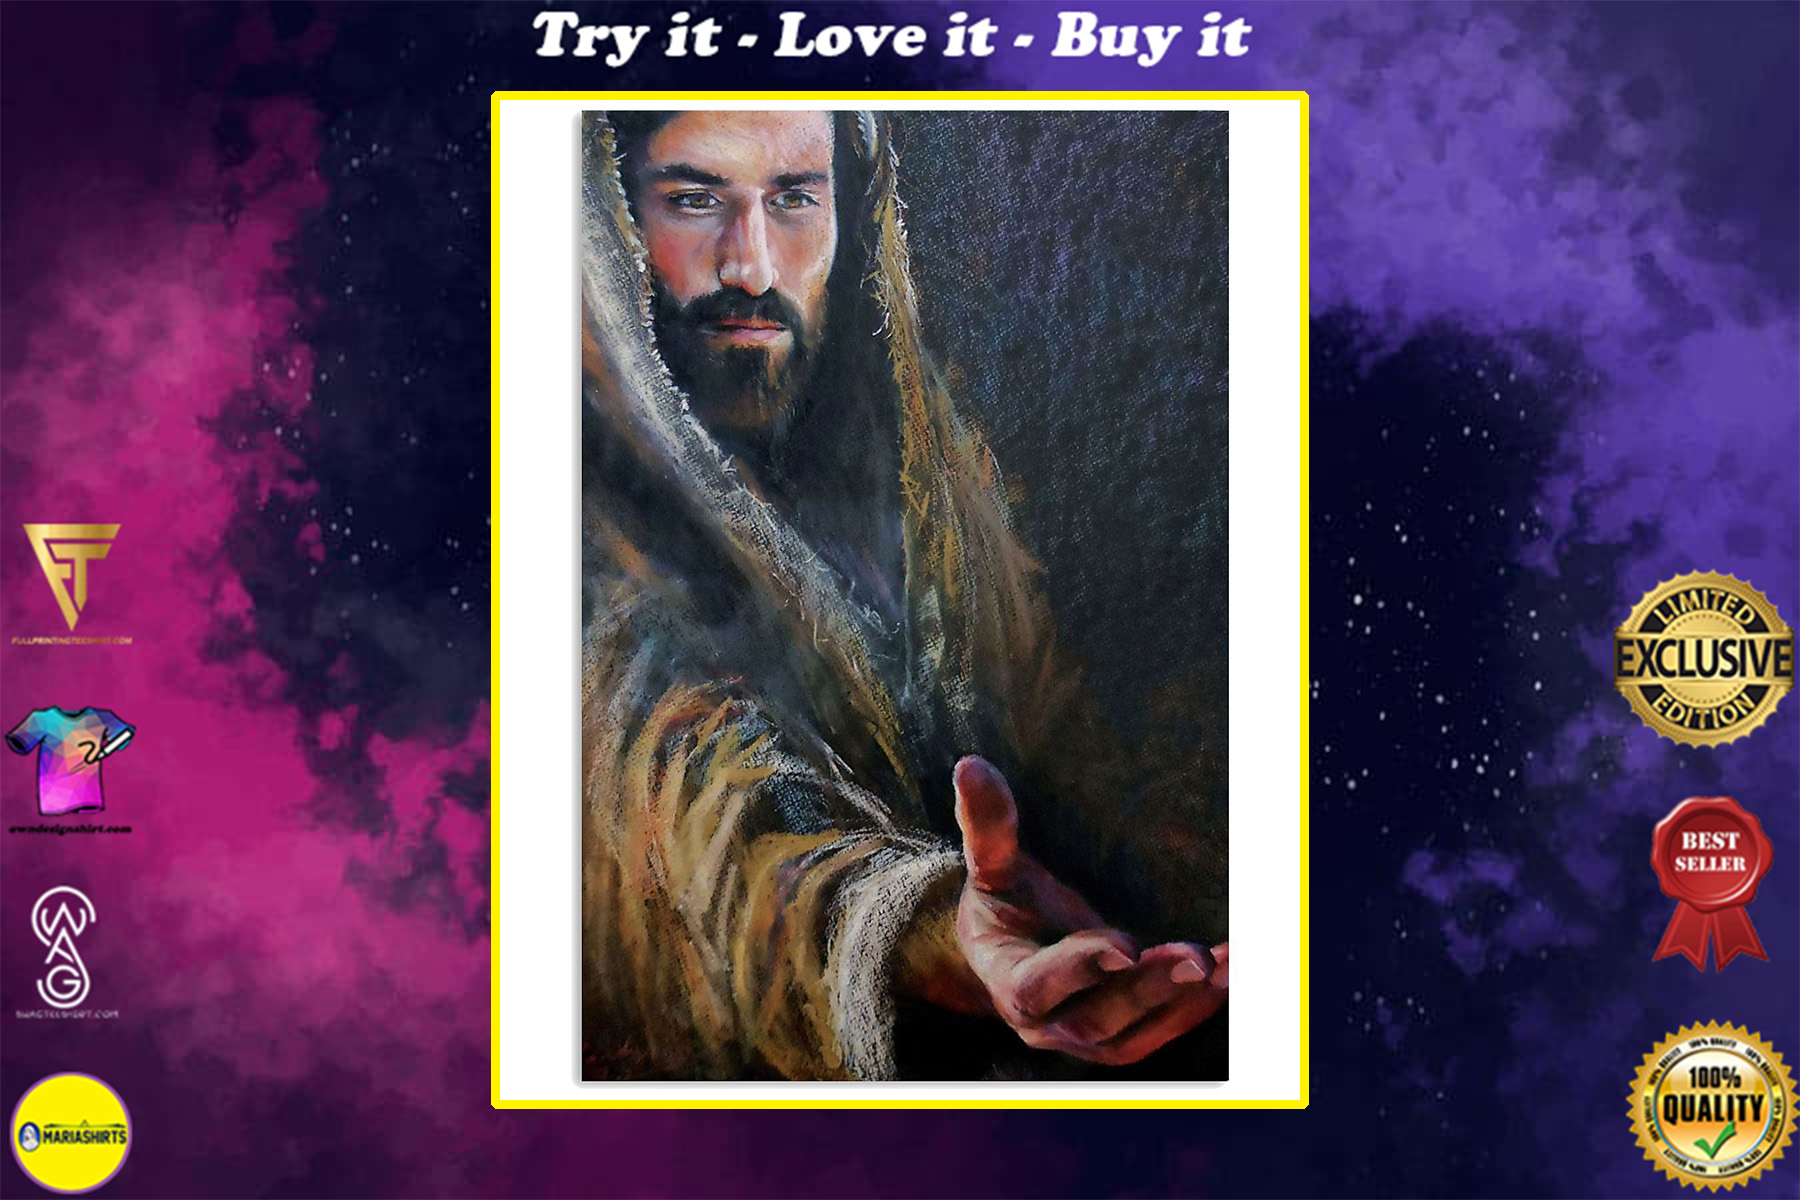 vintage Jesus give me your hand poster